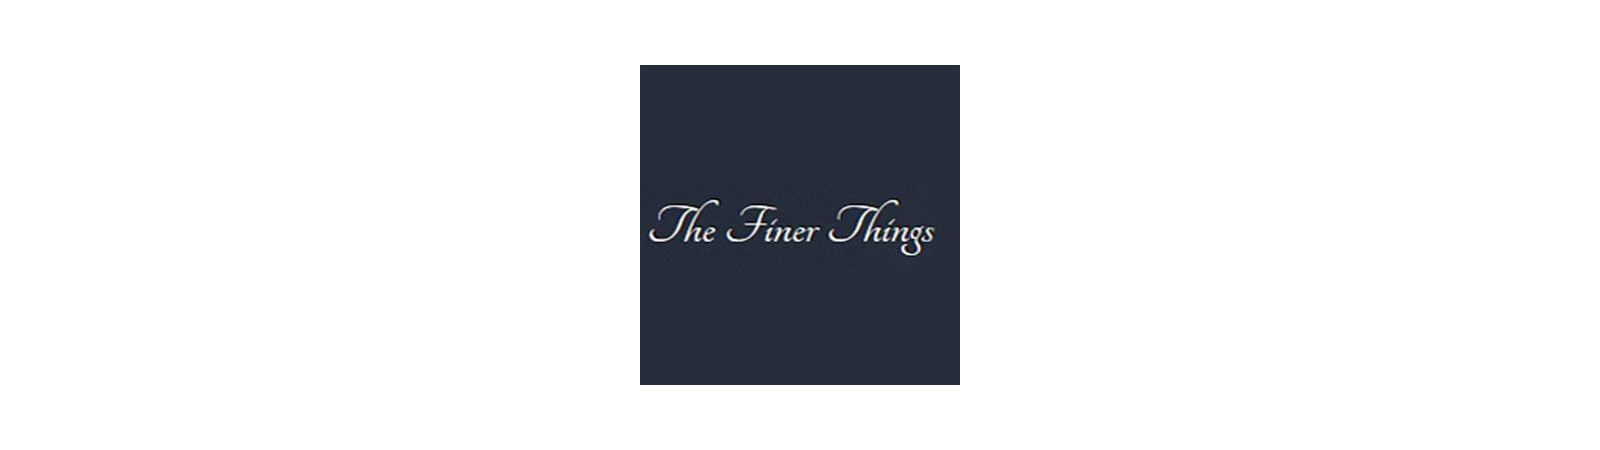 The Finer Things   Auction Ninja